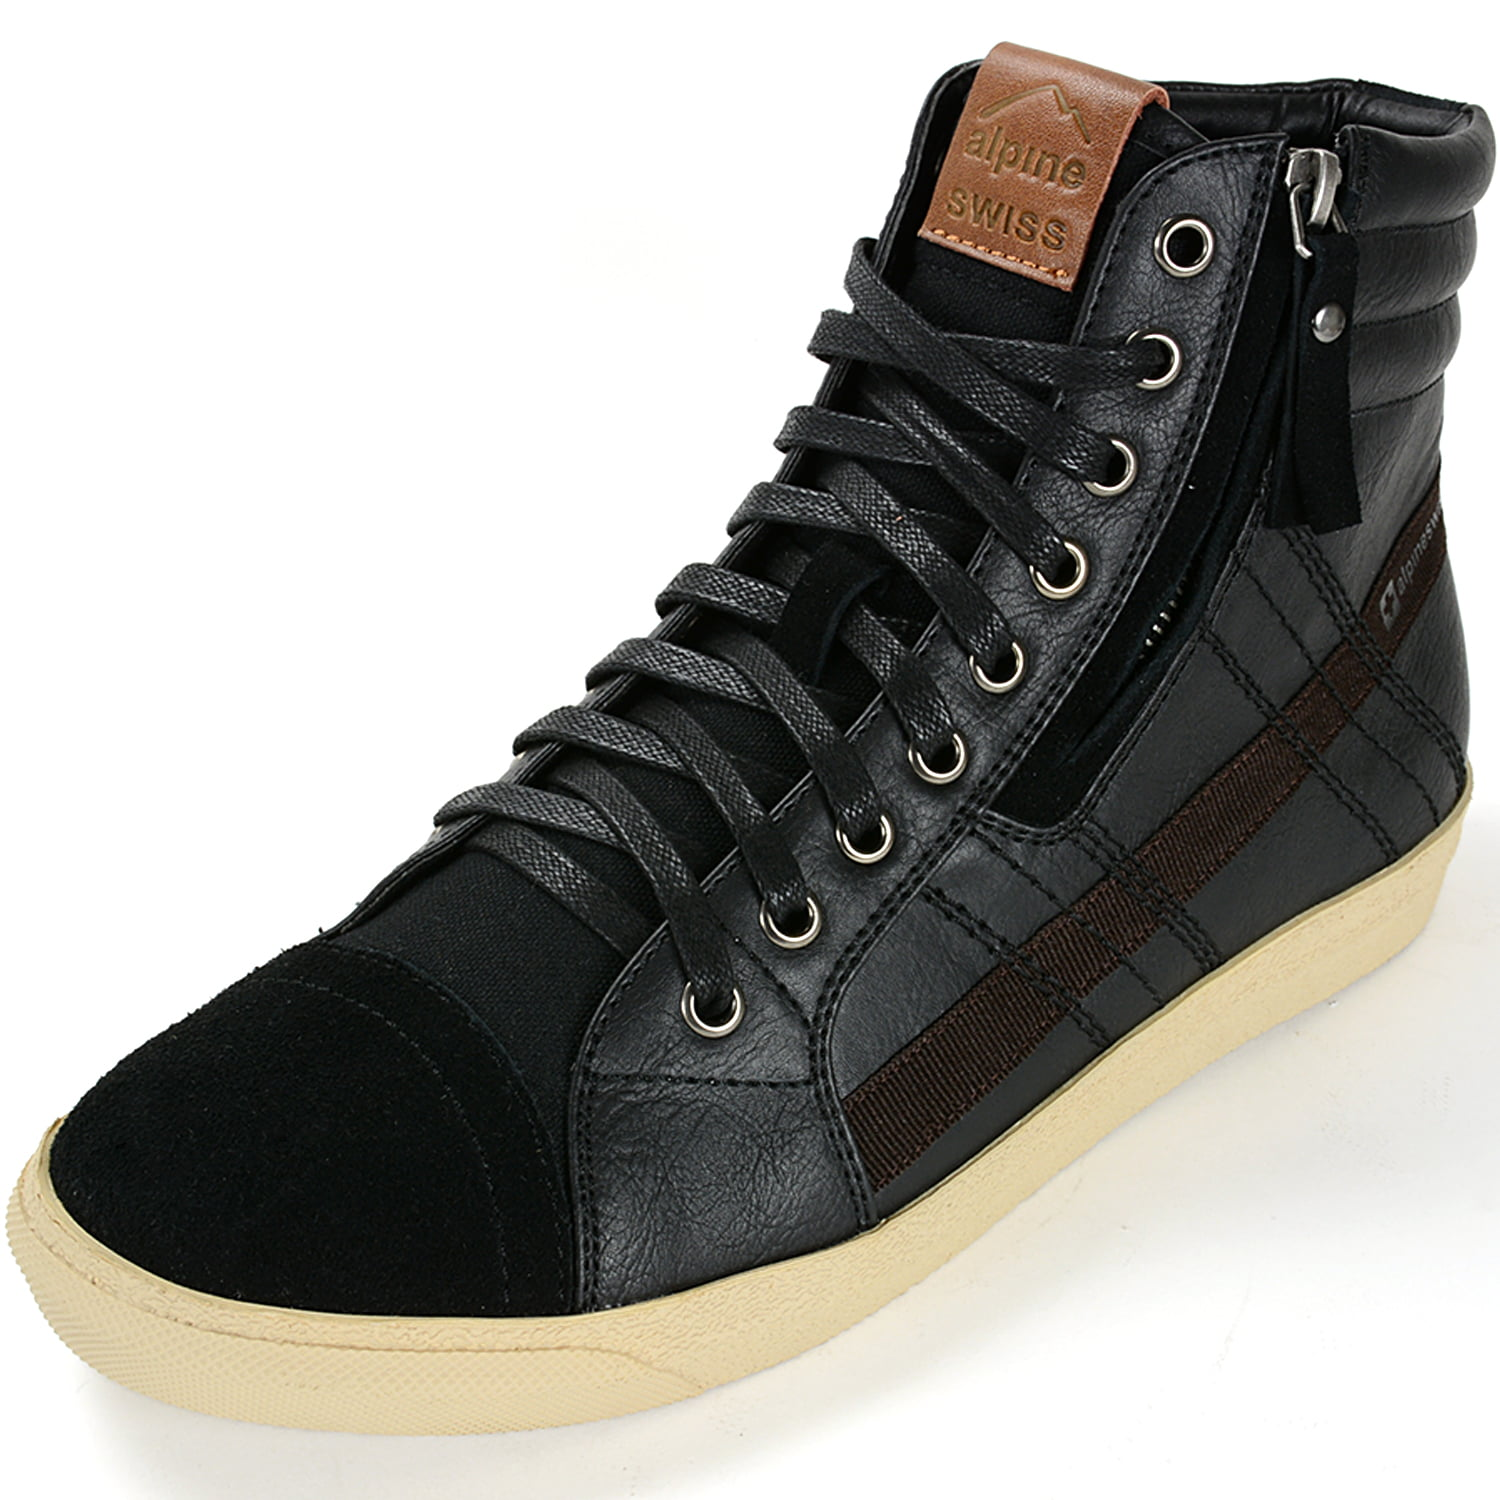 1e437ef13c3f Alpine Swiss Reto Mens High Top Sneakers Lace Up & Zip Ankle Boots Fashion  Shoes